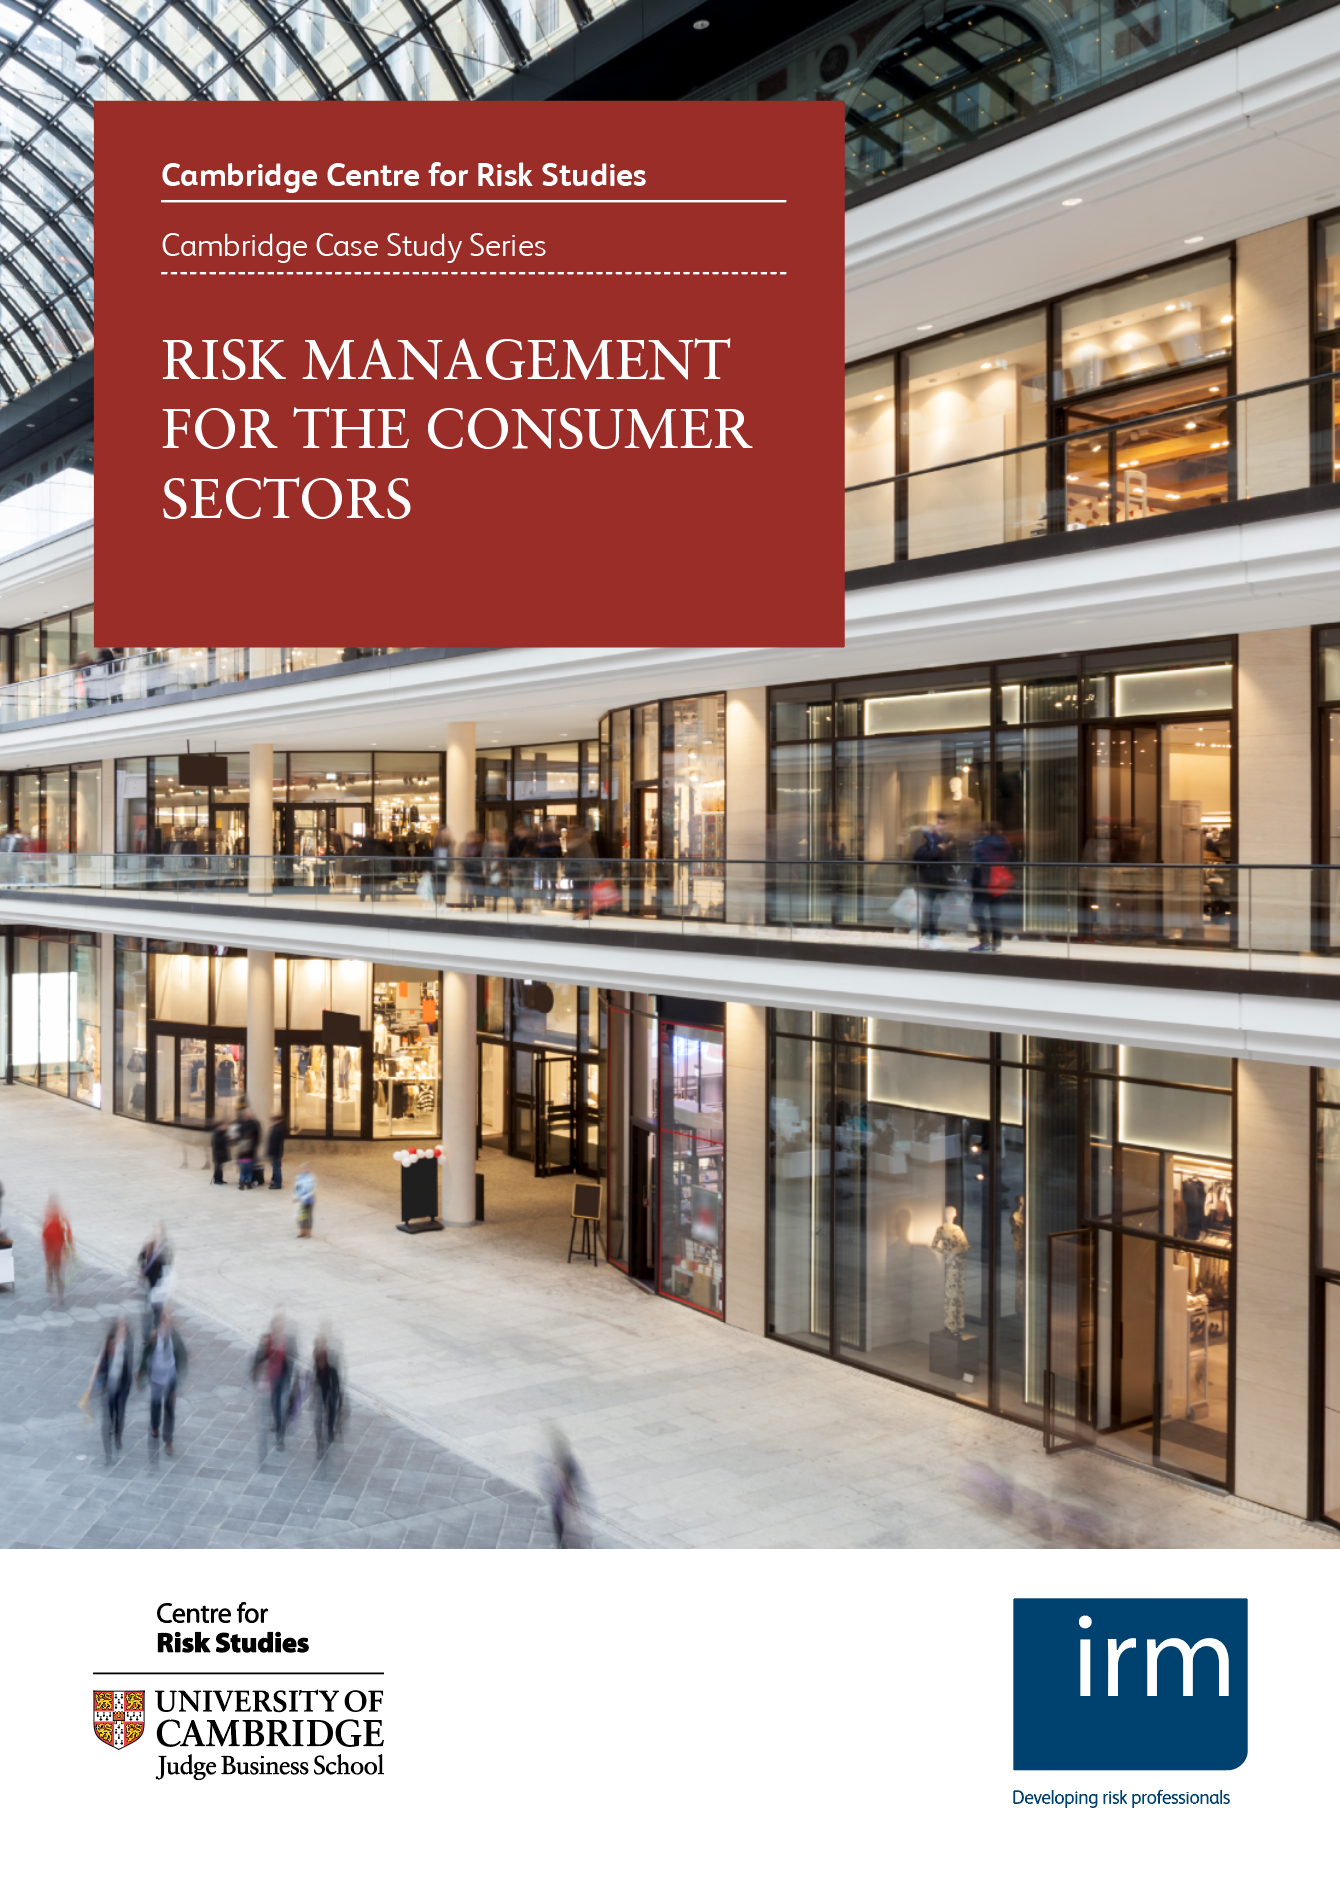 Cambridge Risk Report - Risk Management for the Consumer Sectors